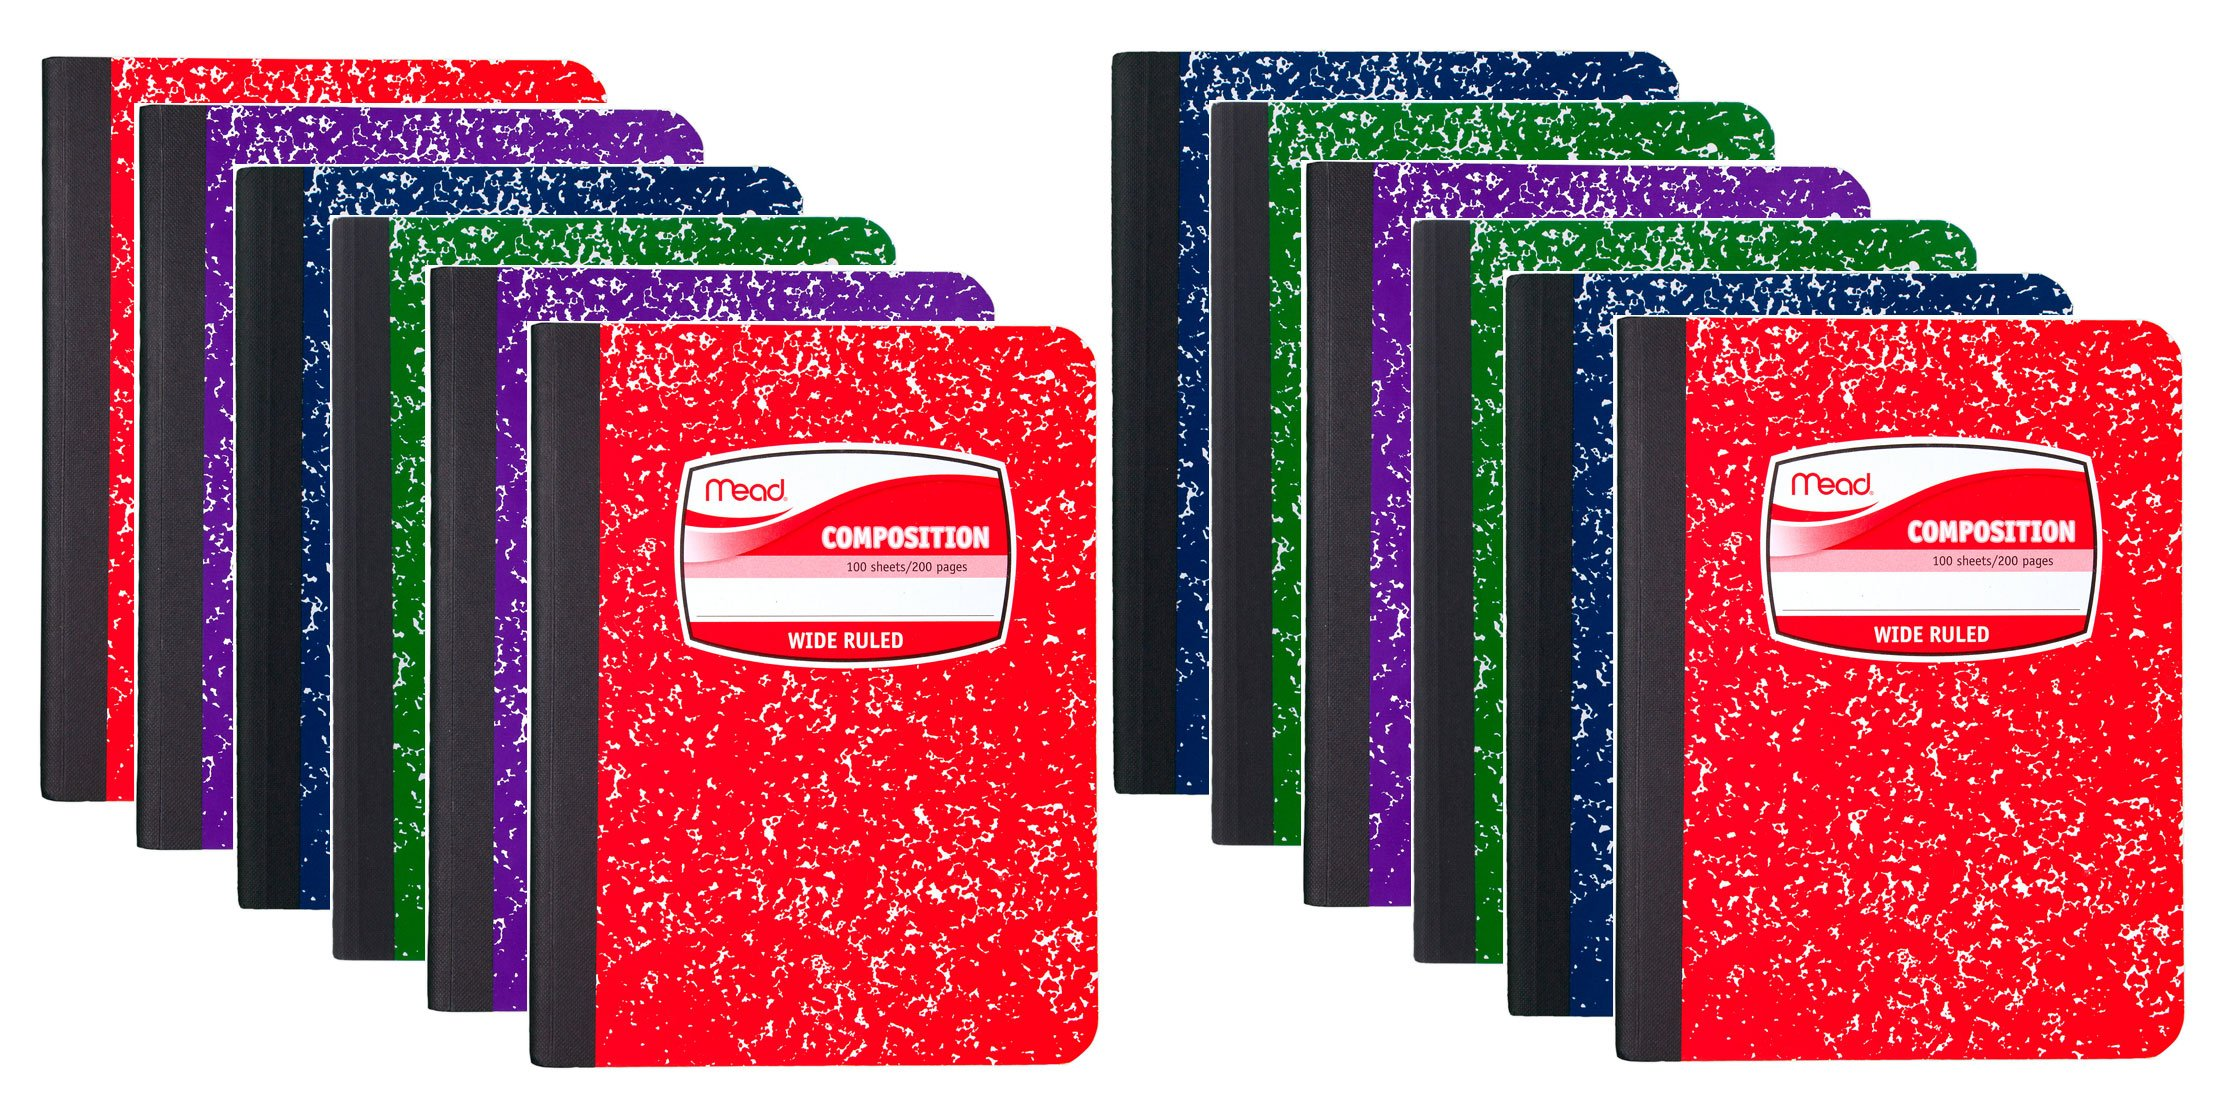 Mead Composition Book Wide Ruled, 100 sheets, COLOR MAY VARY, 12 Pack